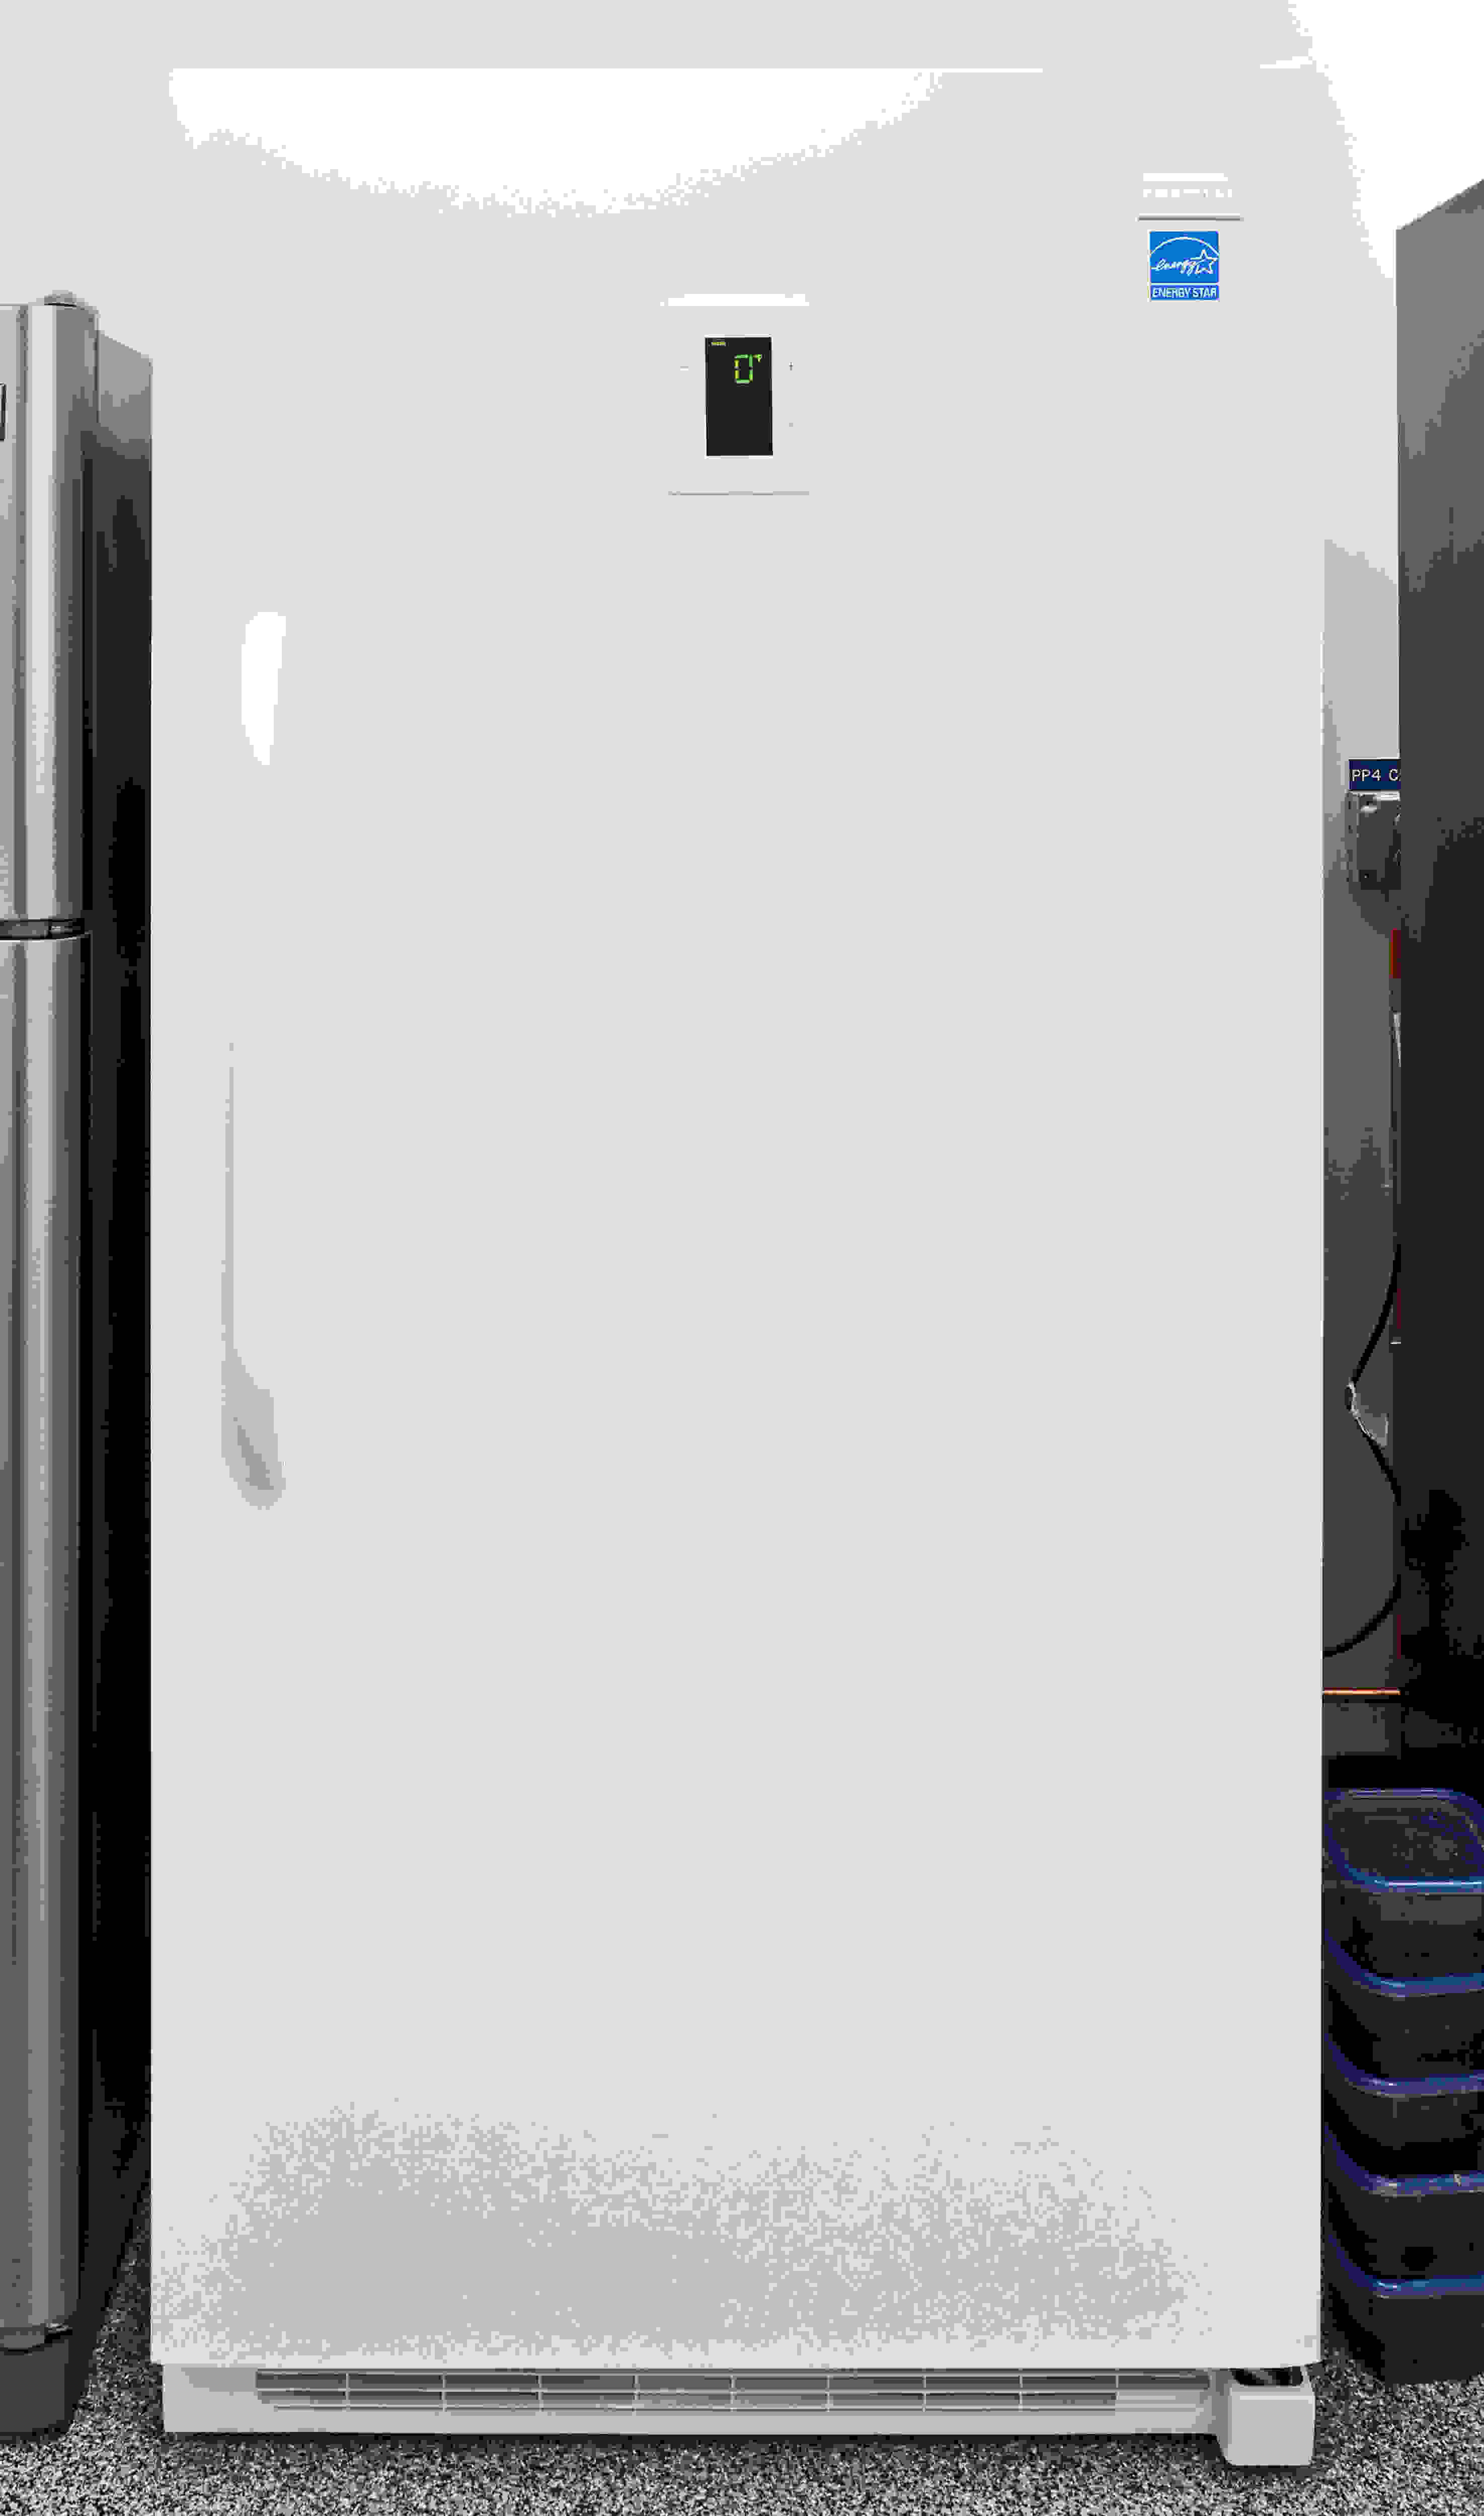 The 20.5-cu.-ft. Frigidaire FFFH21F6QW upright freezer is only available in glossy white.